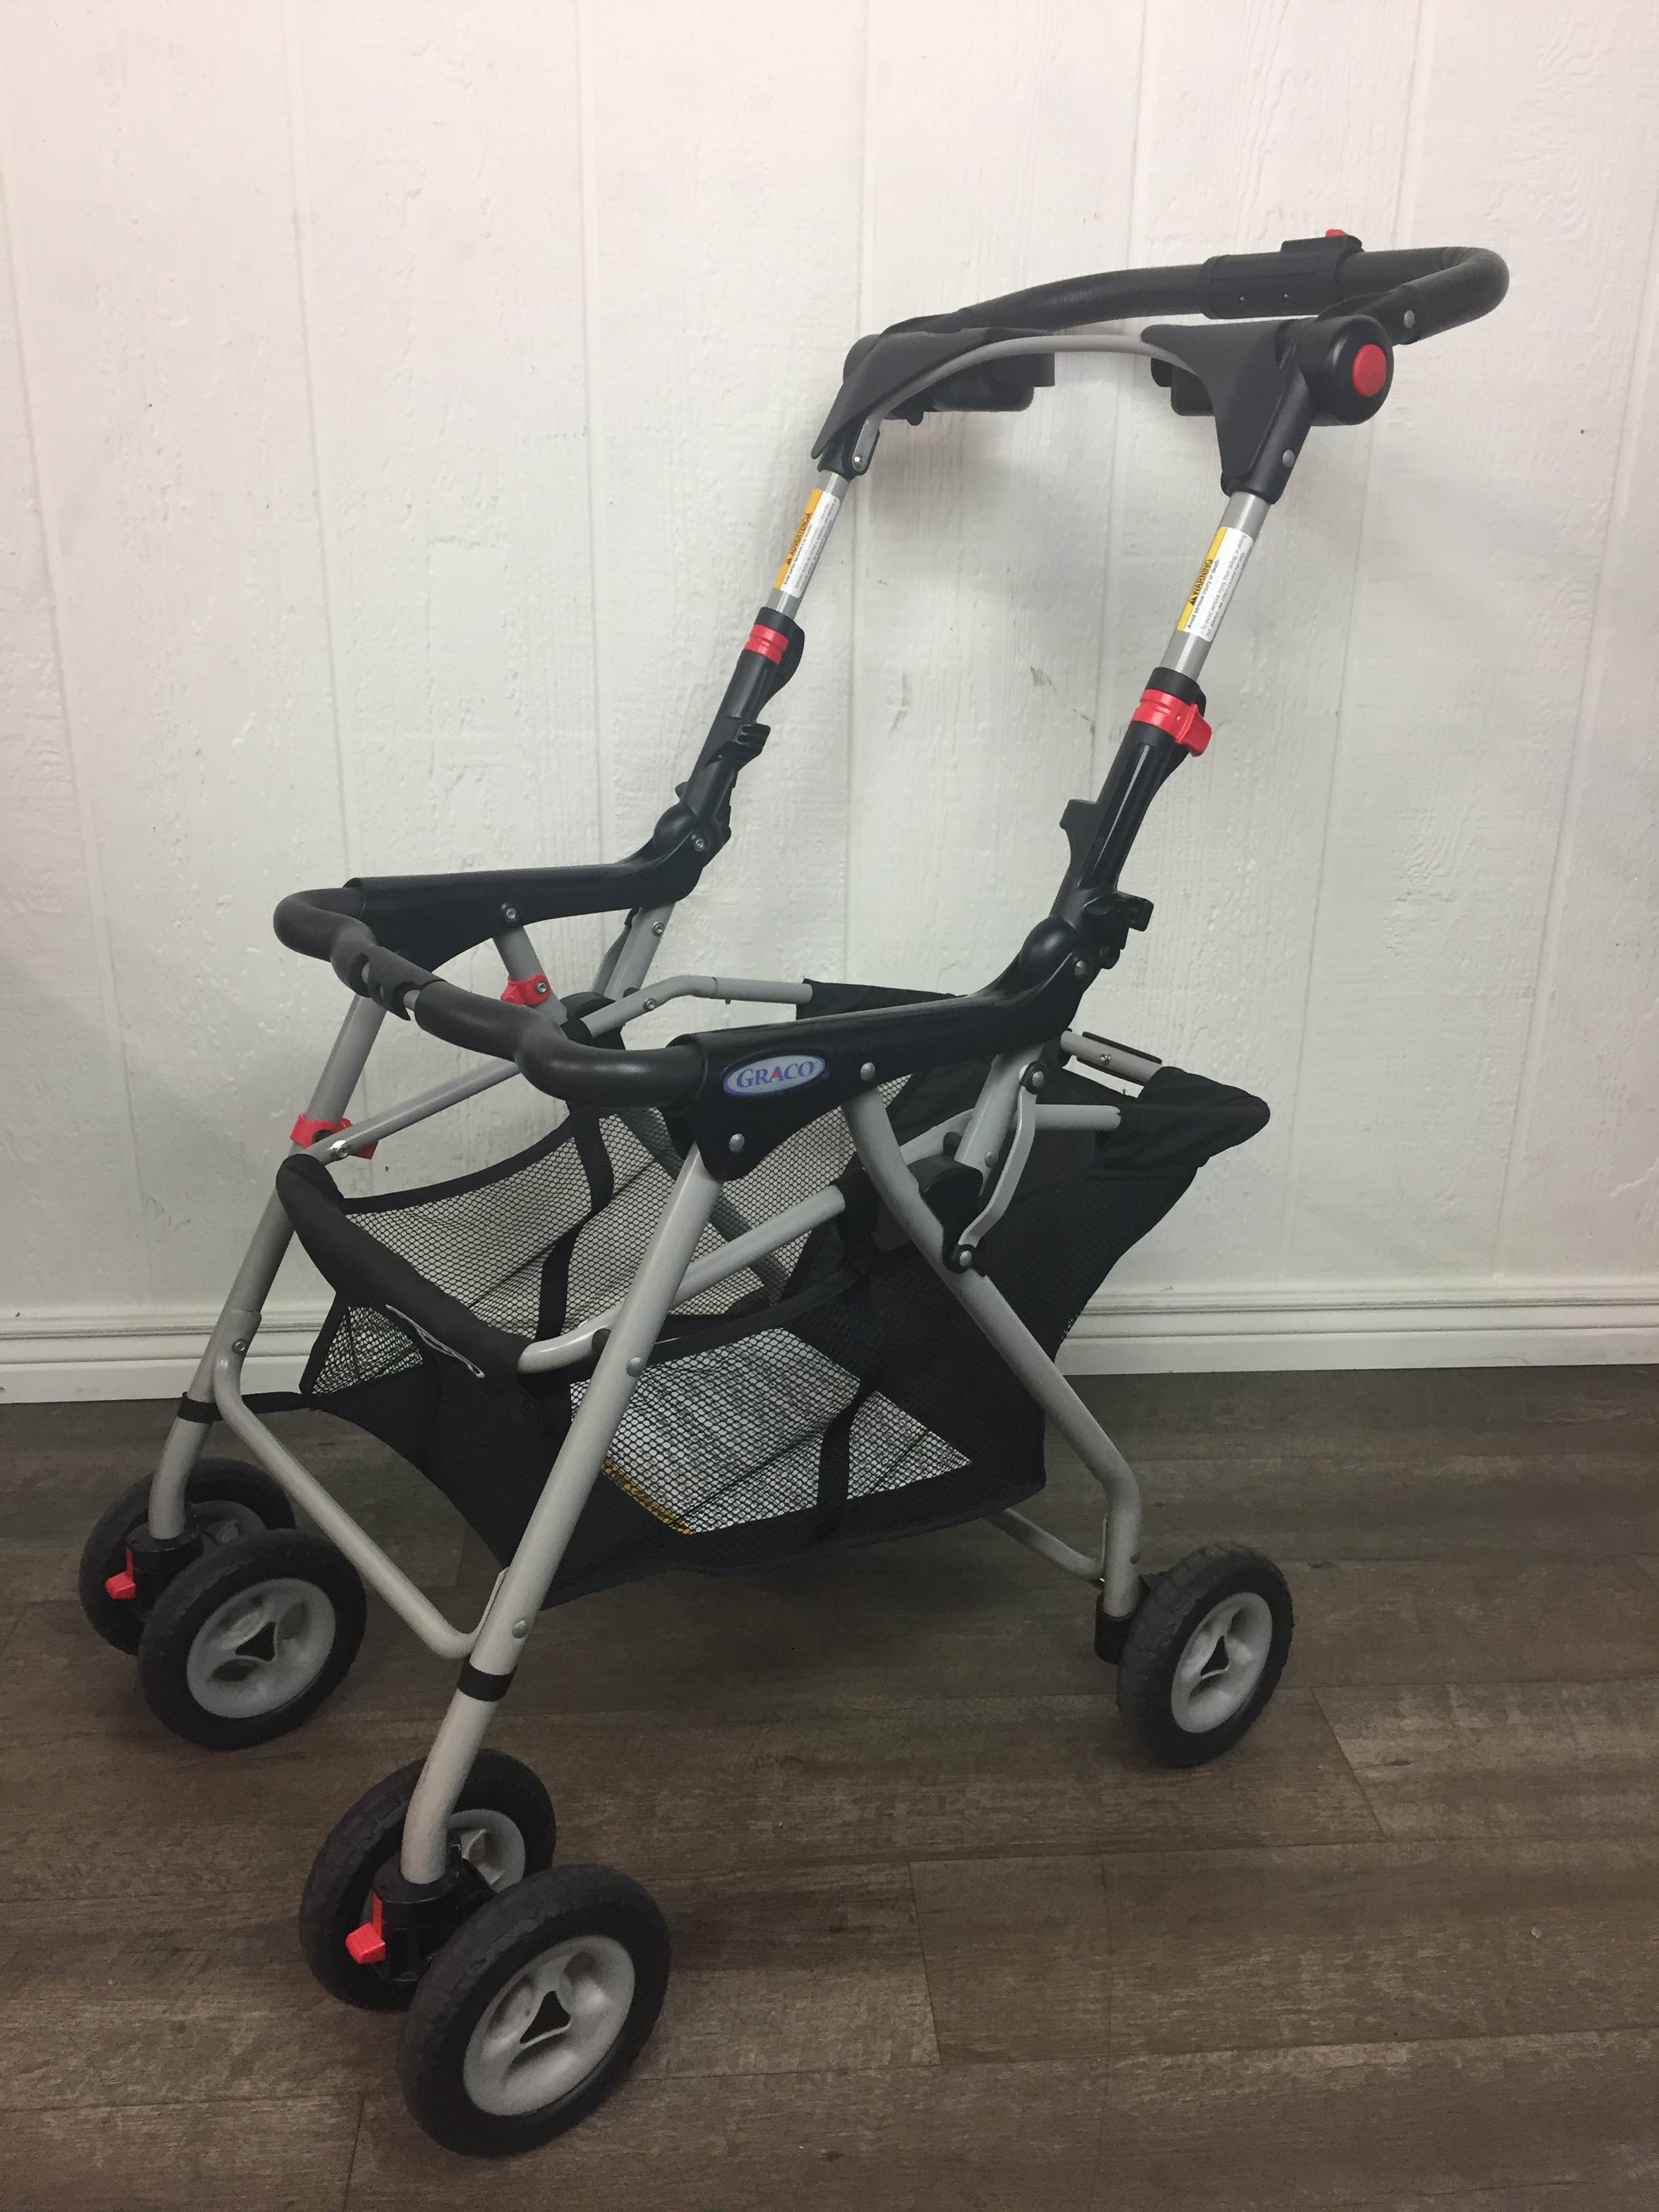 31+ Graco stroller frame how to open information